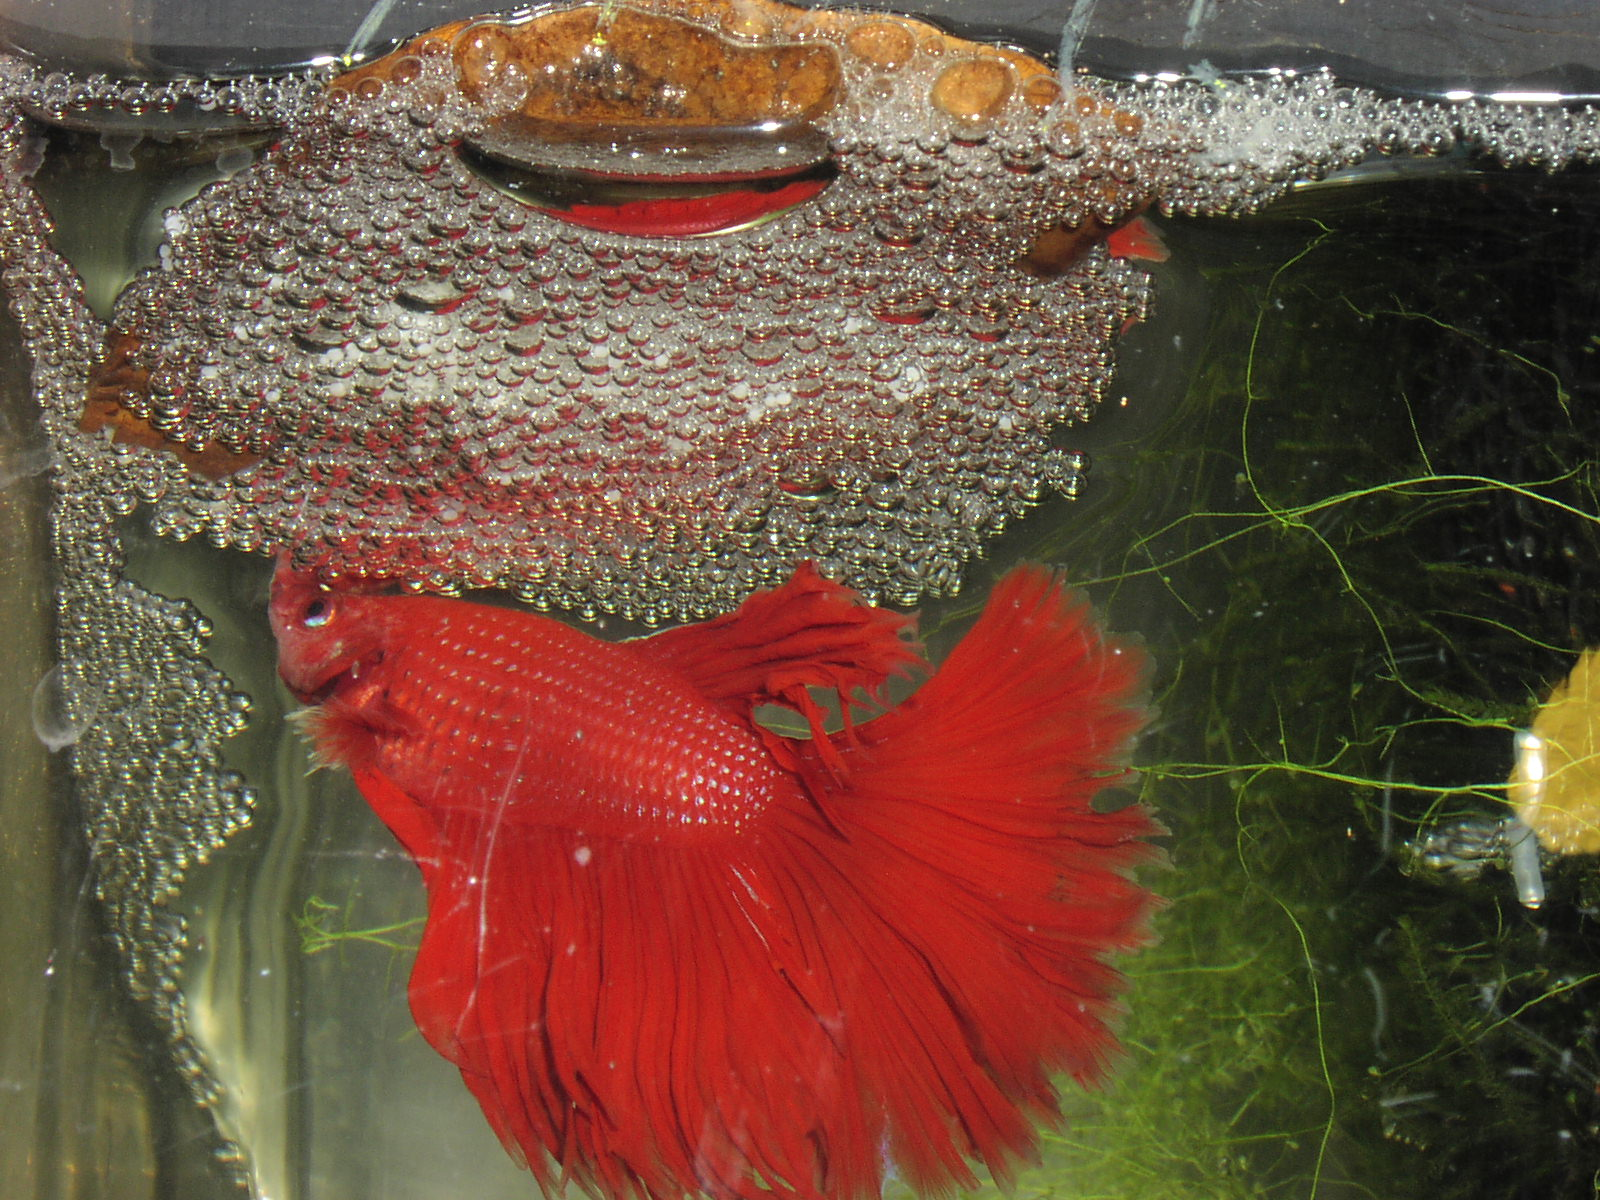 Red male Siamese fighting fish tending eggs (Betta splendens)